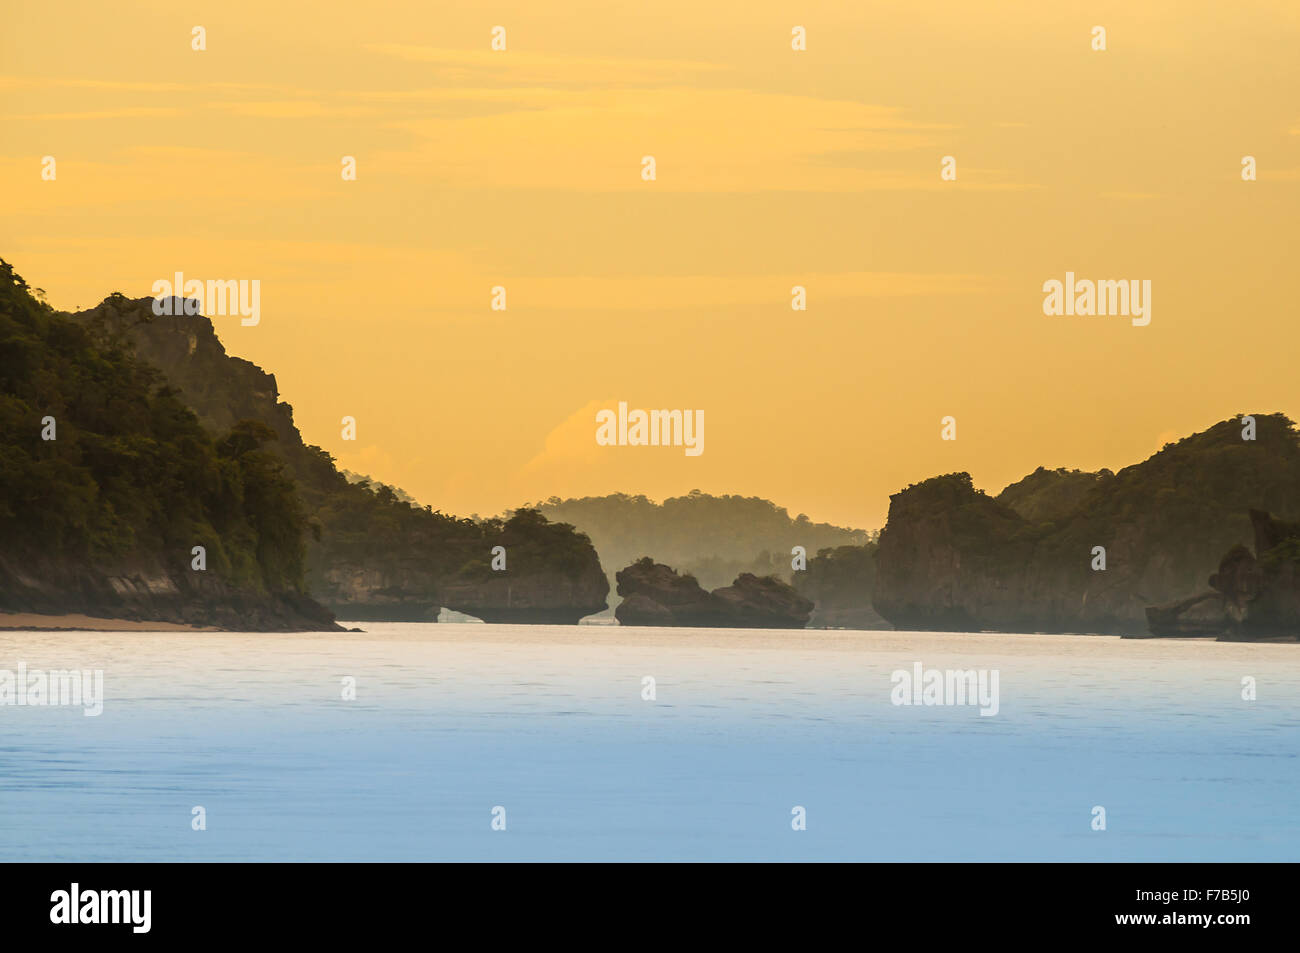 summer outdoor backgrounds. Backgrounds Brackground Landscape Outdoor Summer Beach Gloaming Island Rock Sea Sky Sunset Xhillock